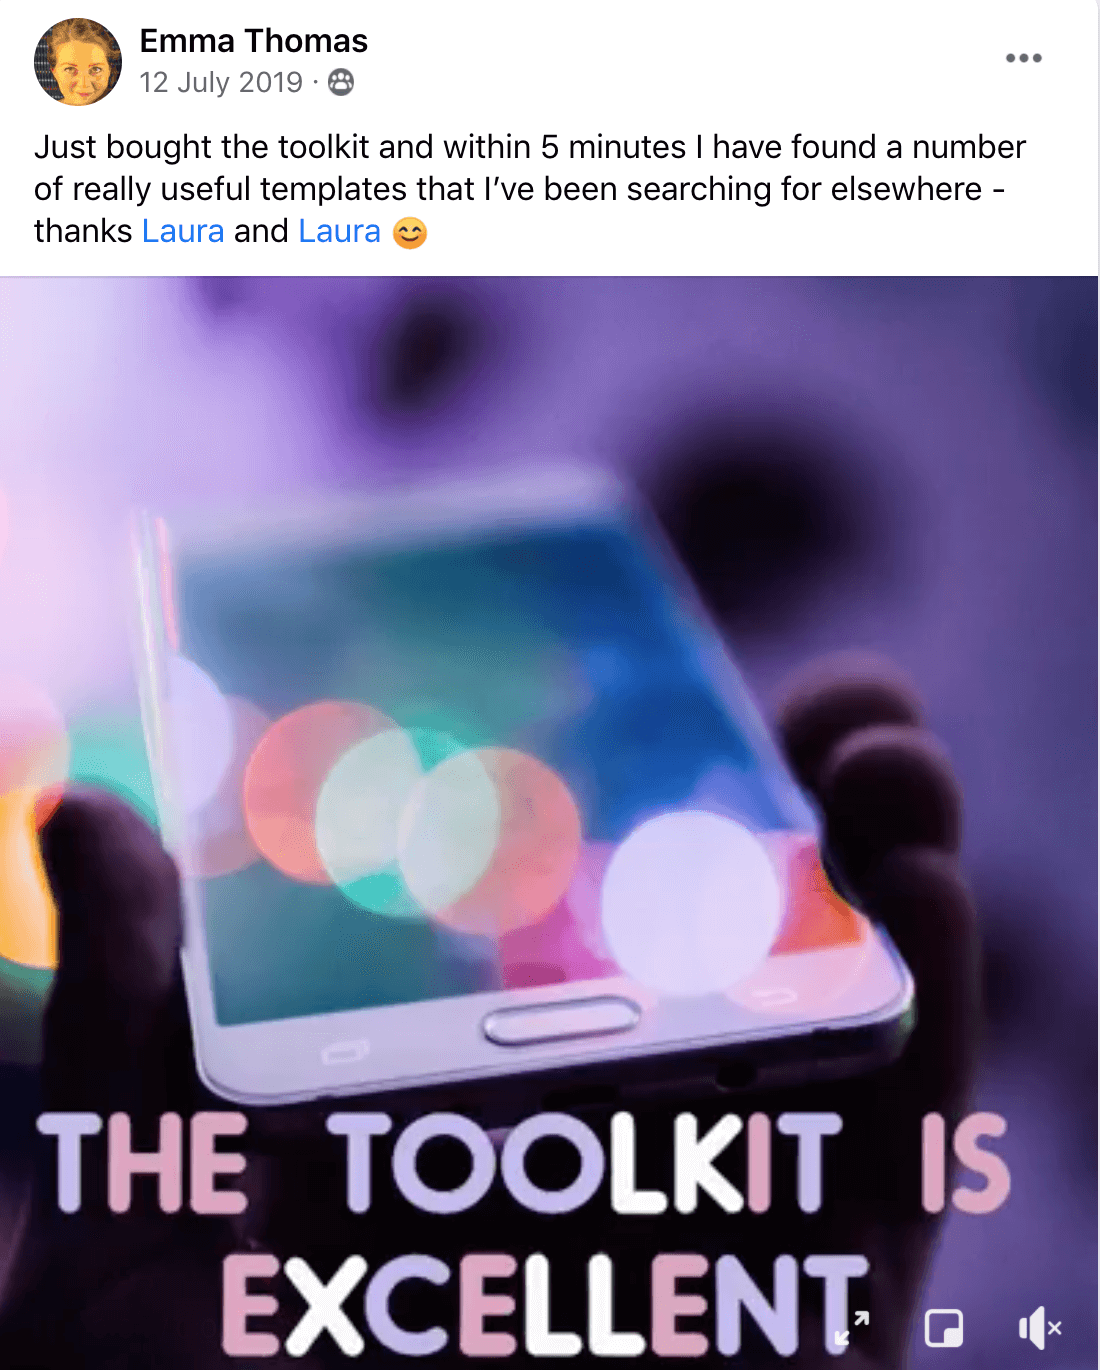 The social media managers toolkit - review